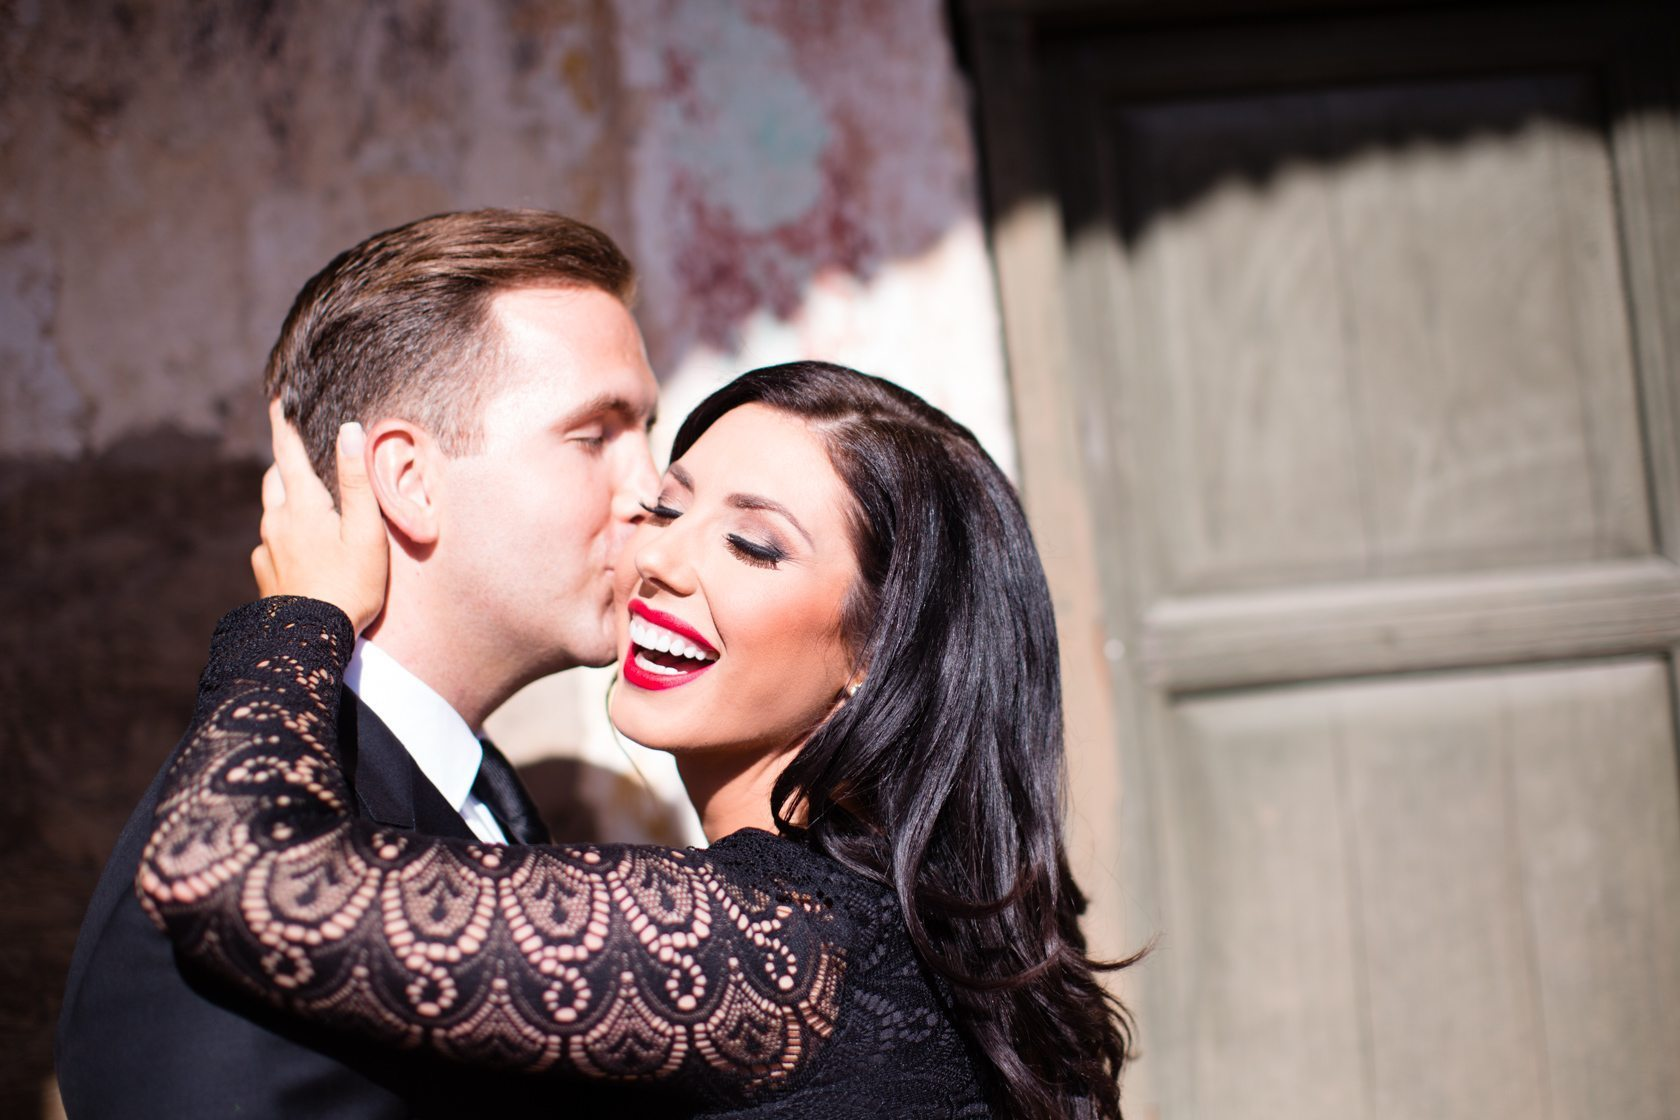 Mission_San_Juan_Capistrano_Engagement_Session_04.jpg